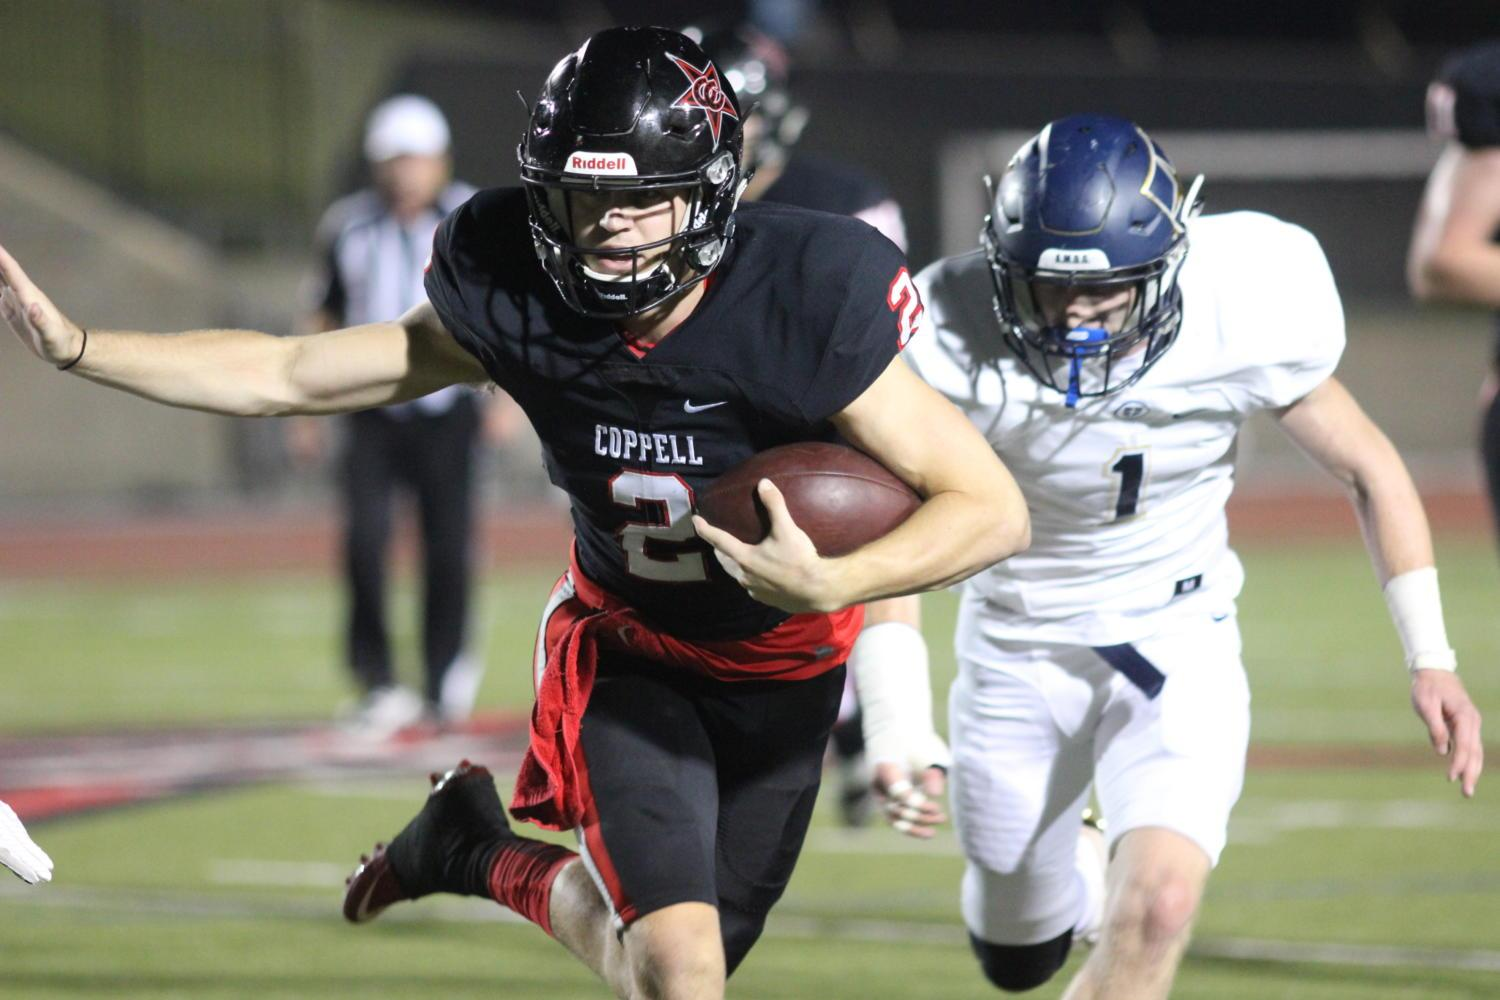 Coppell Cowboys senior quarterback Brady Mcbride runs ball-in-hand during the second quarter on Sept. 29 at Buddy Echols Field. The Coppell Cowboys win against the Jesuit Rangers, 63-41, during the second home game of the season.